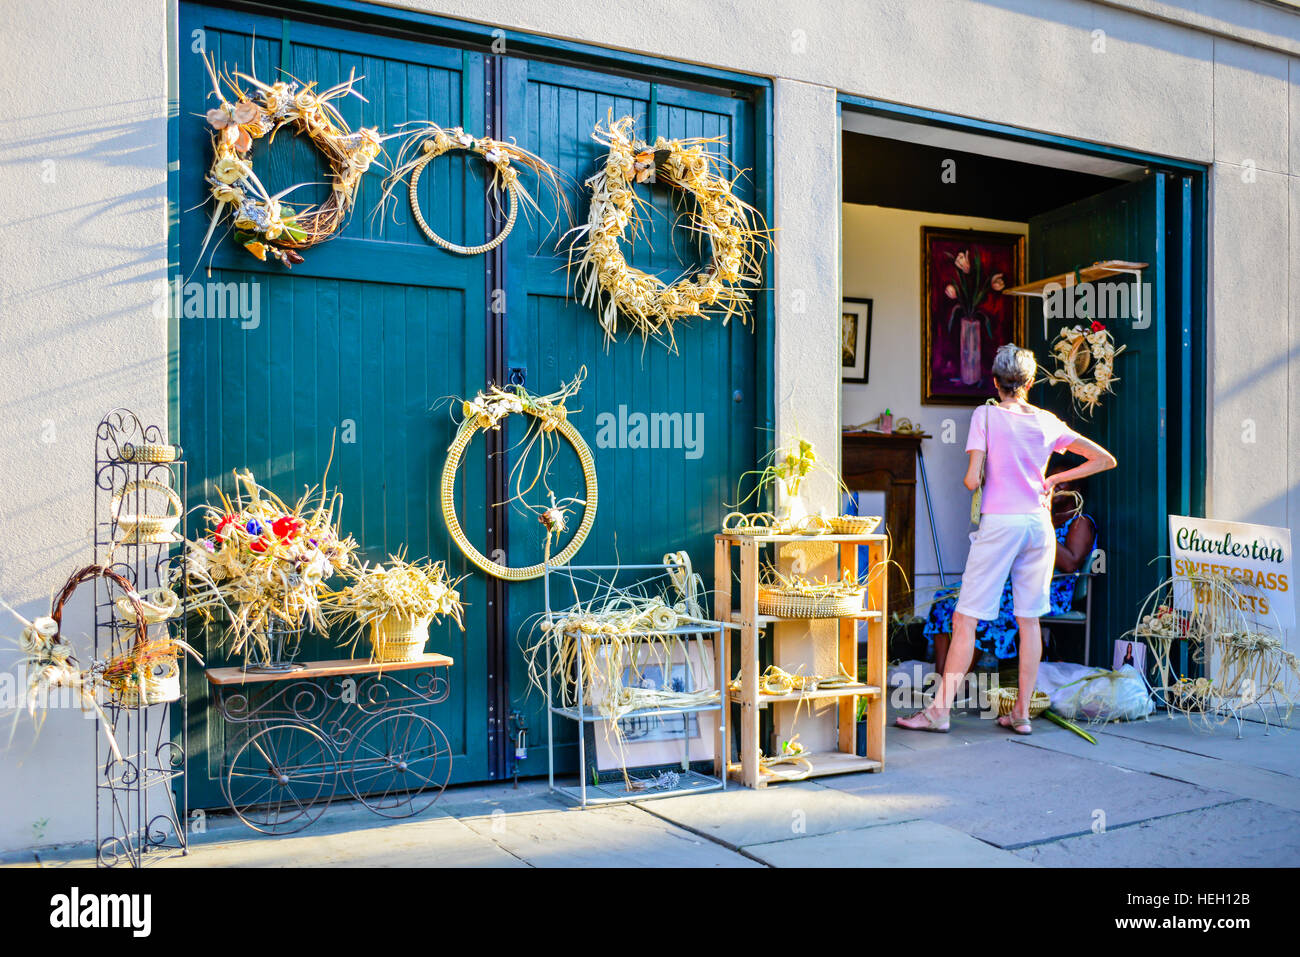 Seagrass wreaths and crafts for sell are displayed by artist outside on wooden doors in historic downtown Charleston SC & Seagrass wreaths and crafts for sell are displayed by artist outside ...